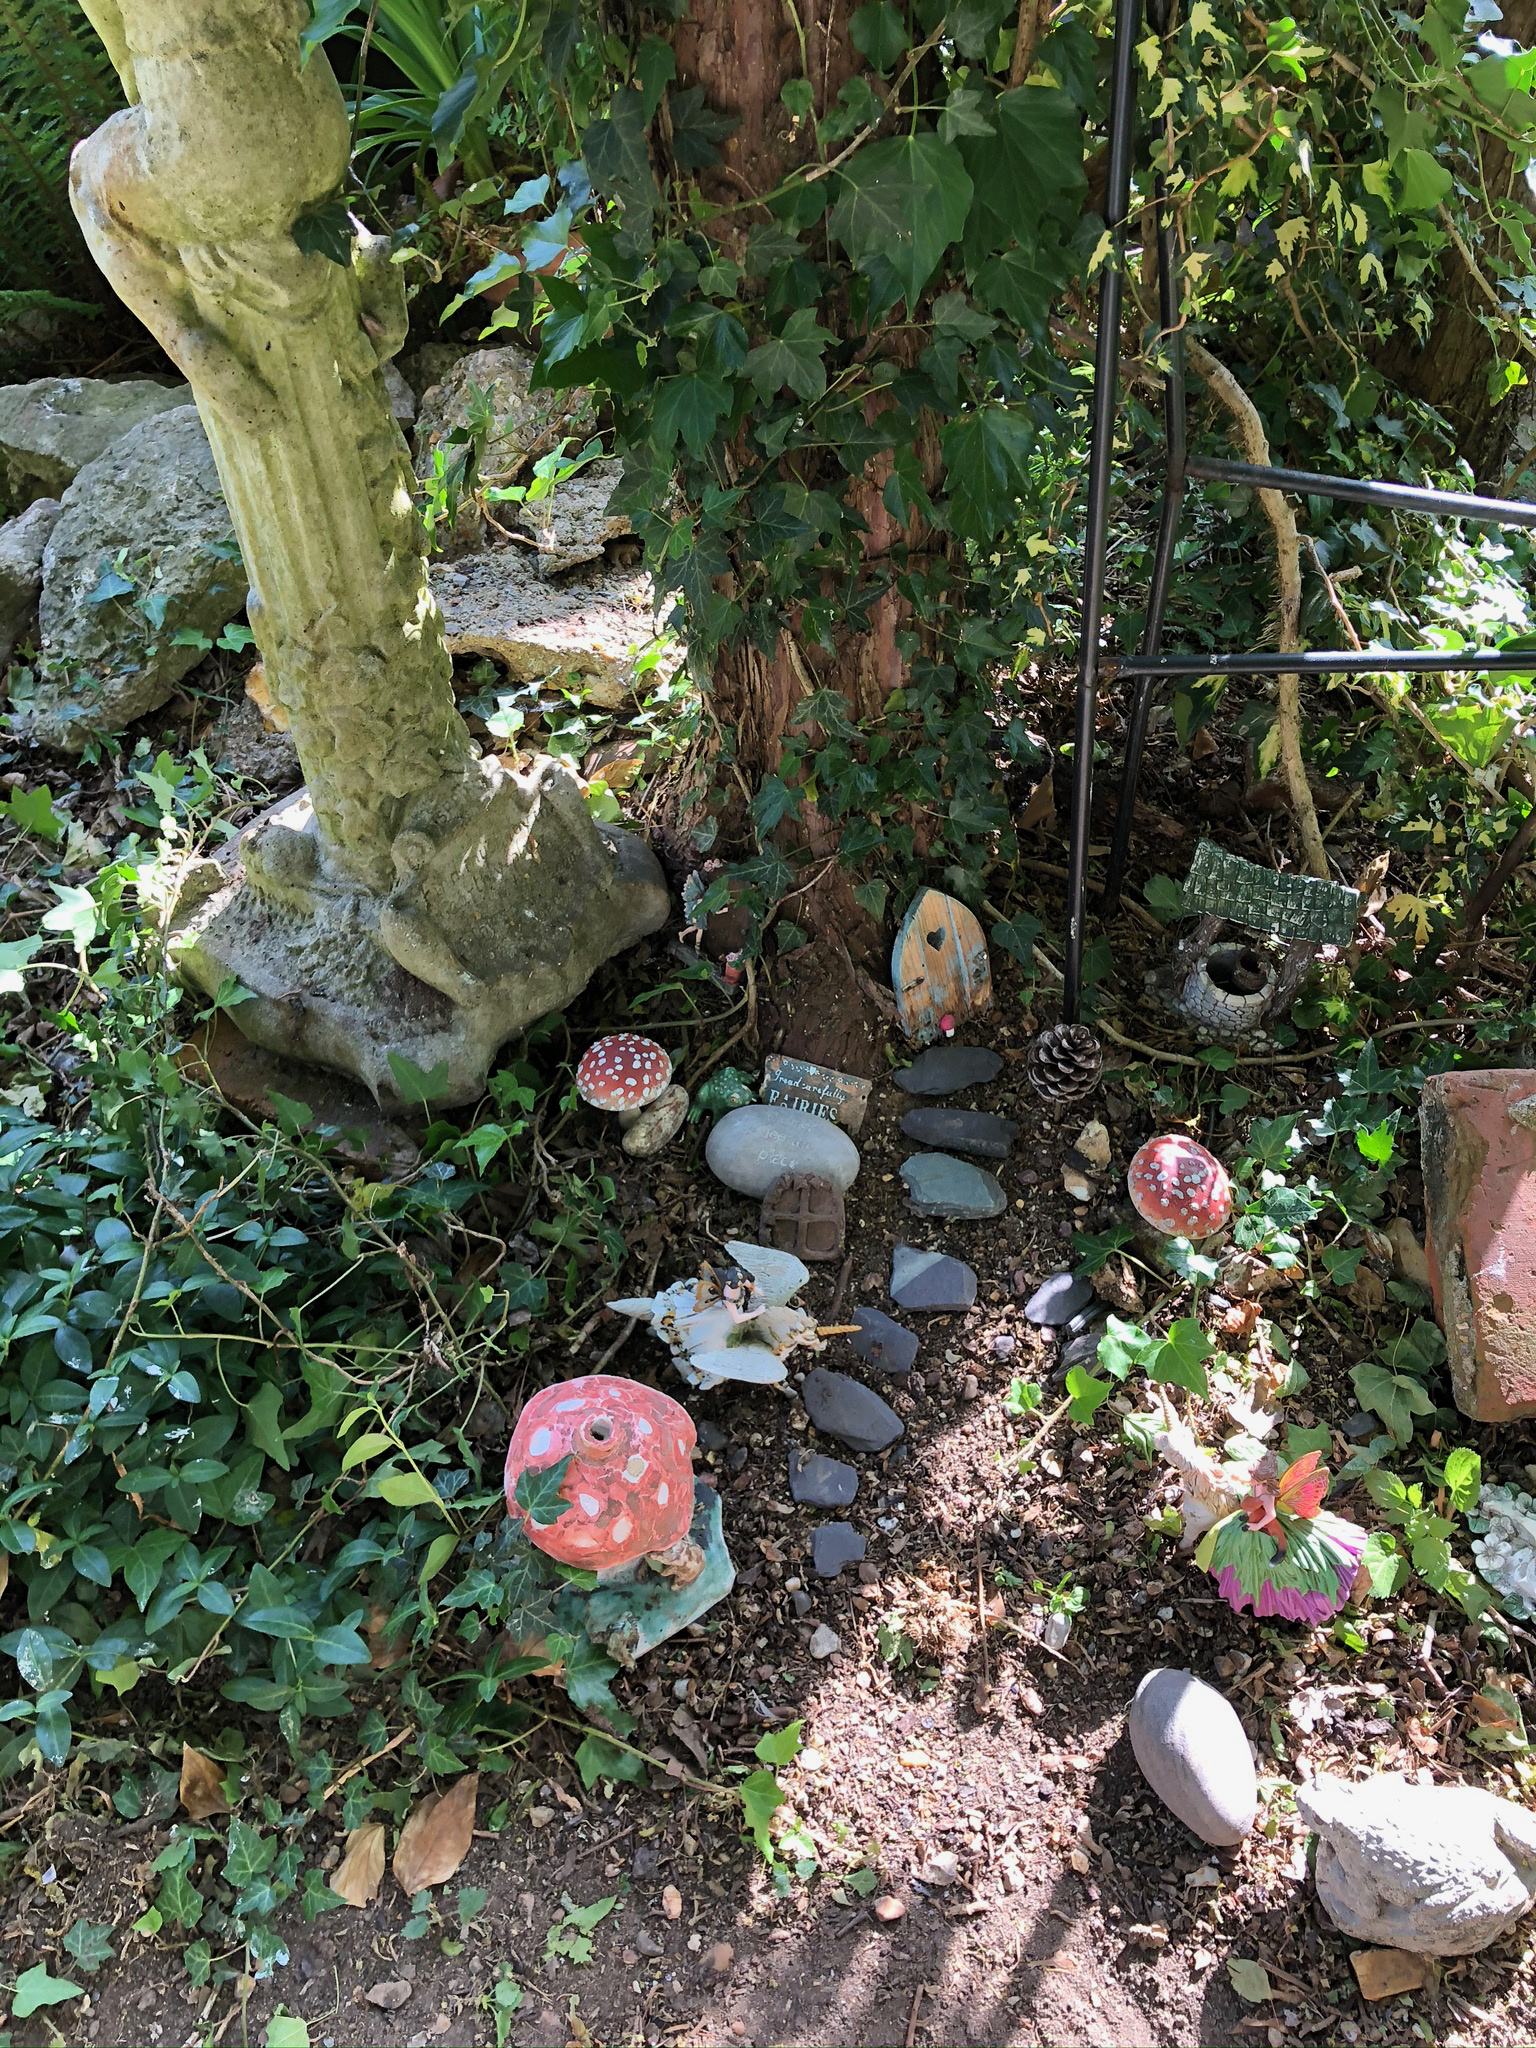 Fairy Garden and Robins- Rare May 29 Photo a Day